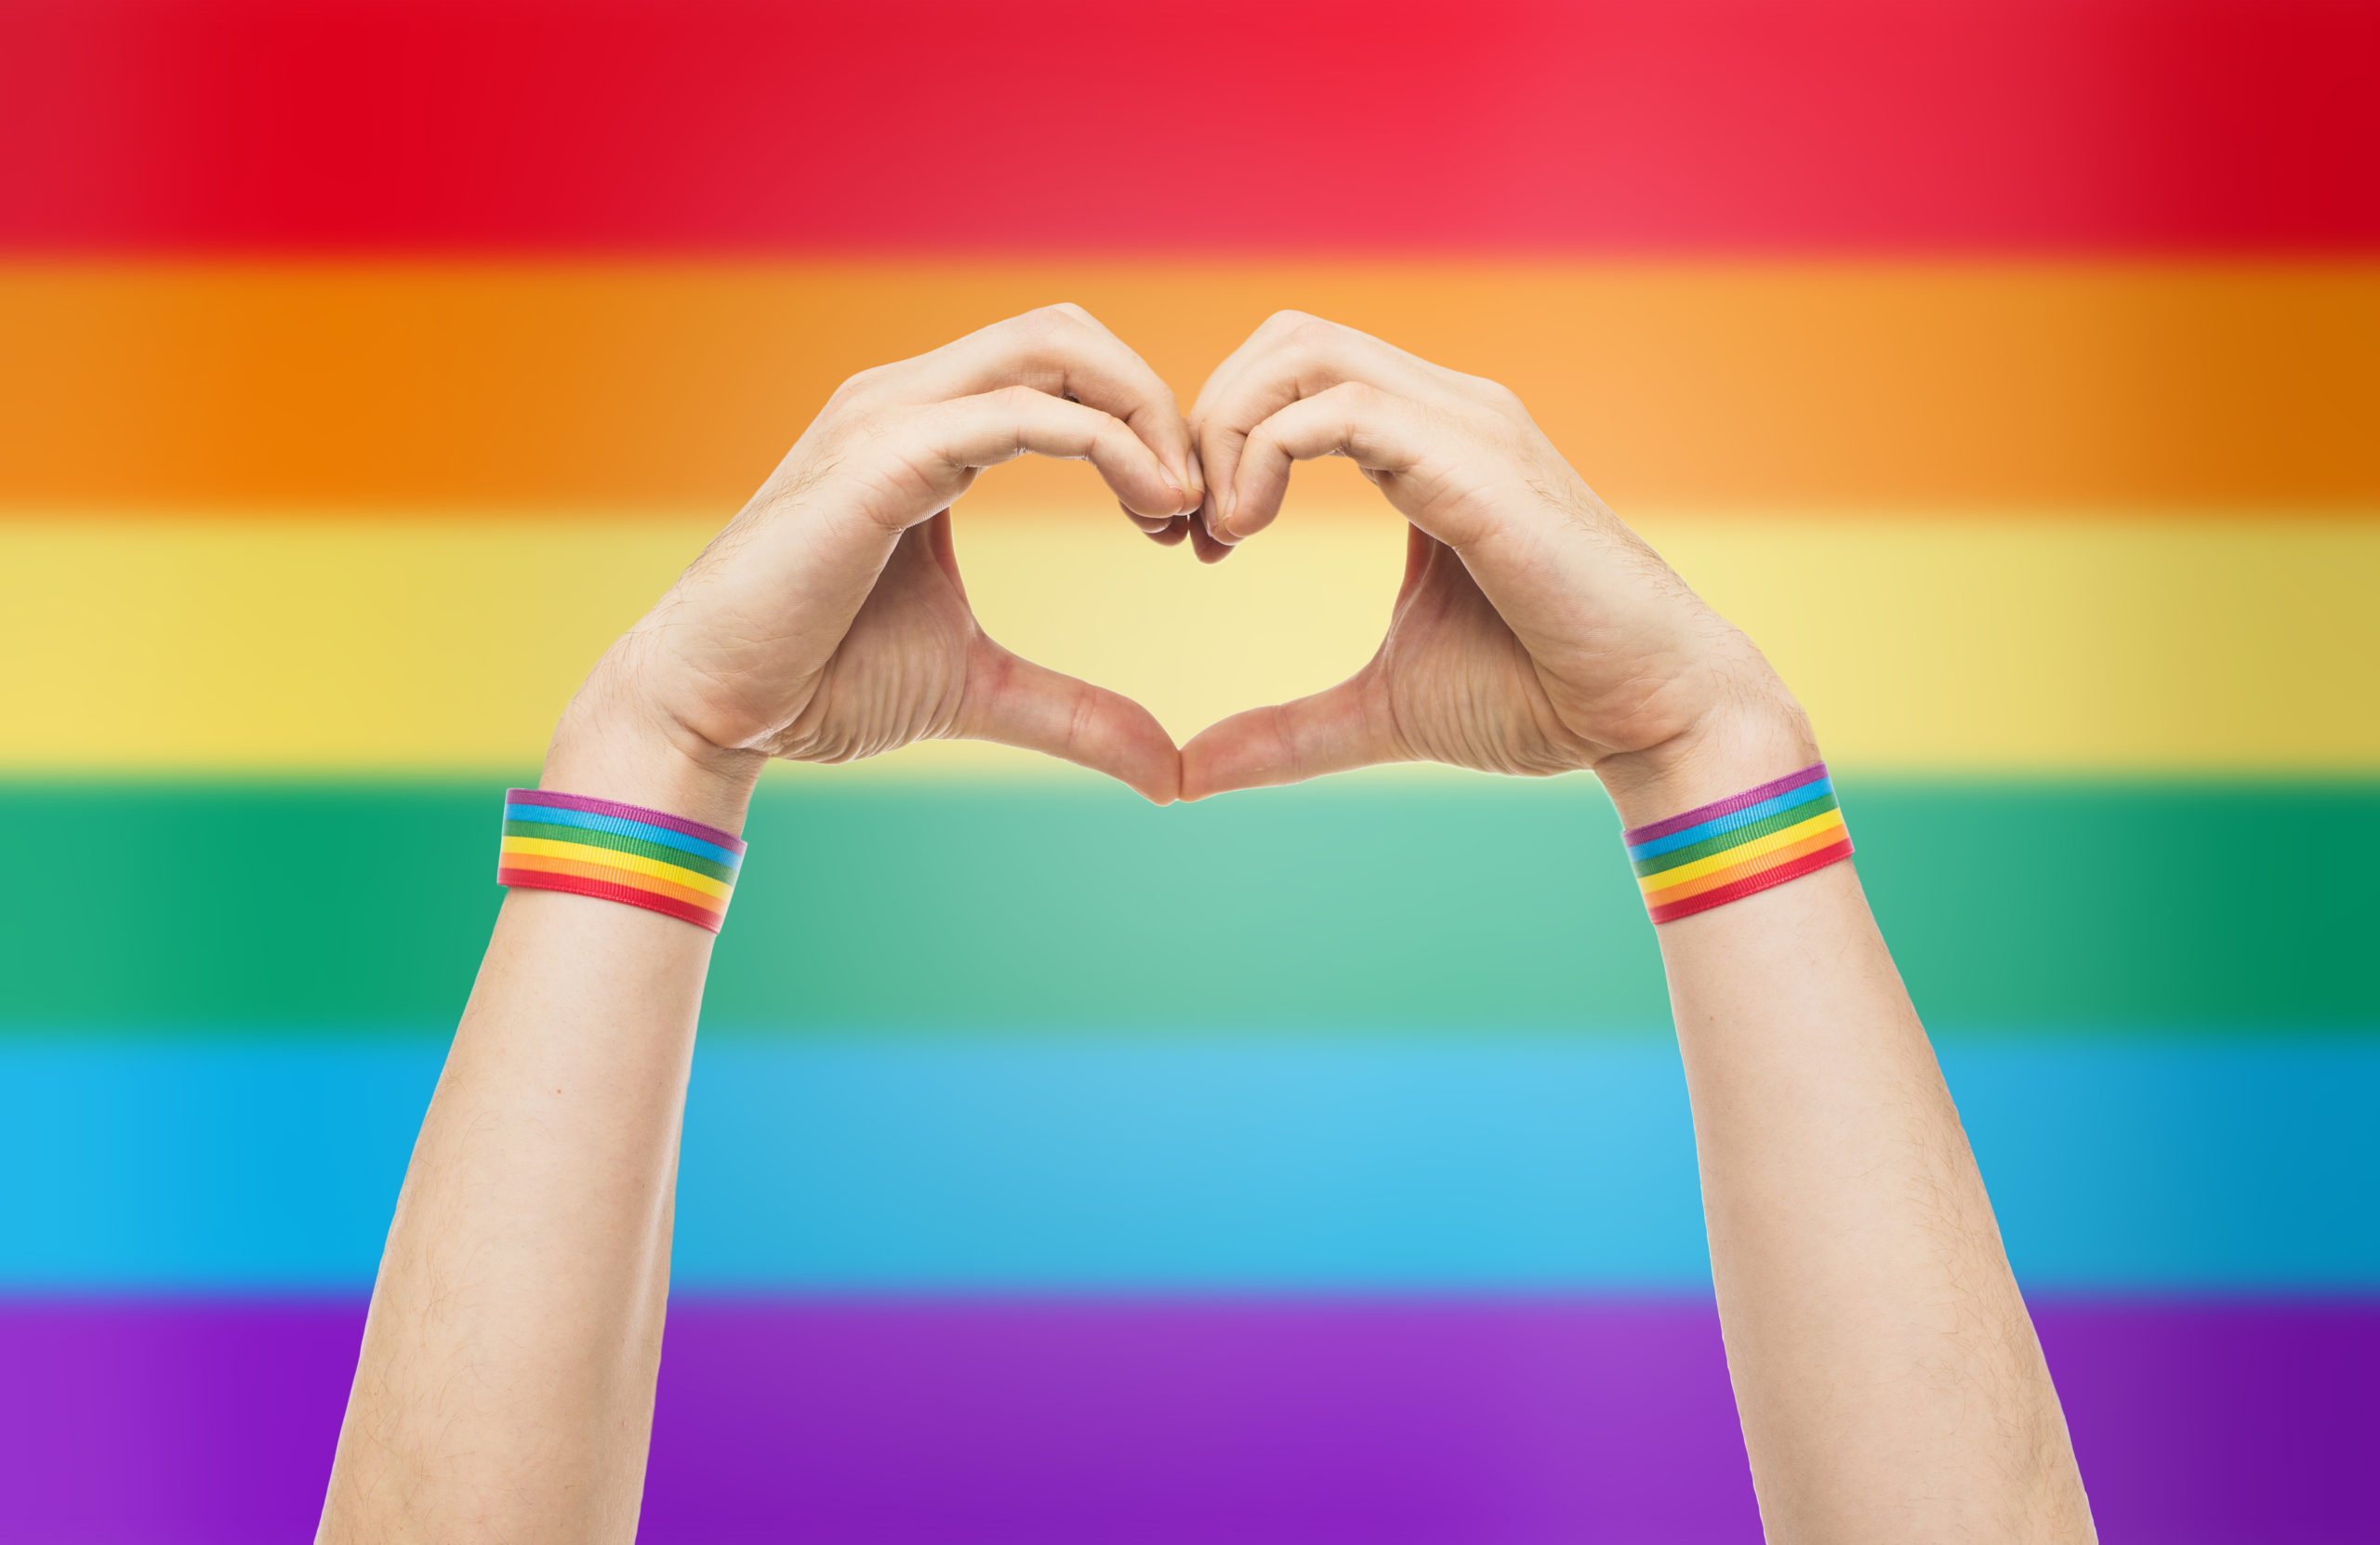 lgbt, same-sex love and homosexual relationships concept - close up of male hands with gay pride awareness wristbands showing heart gesture over rainbow background